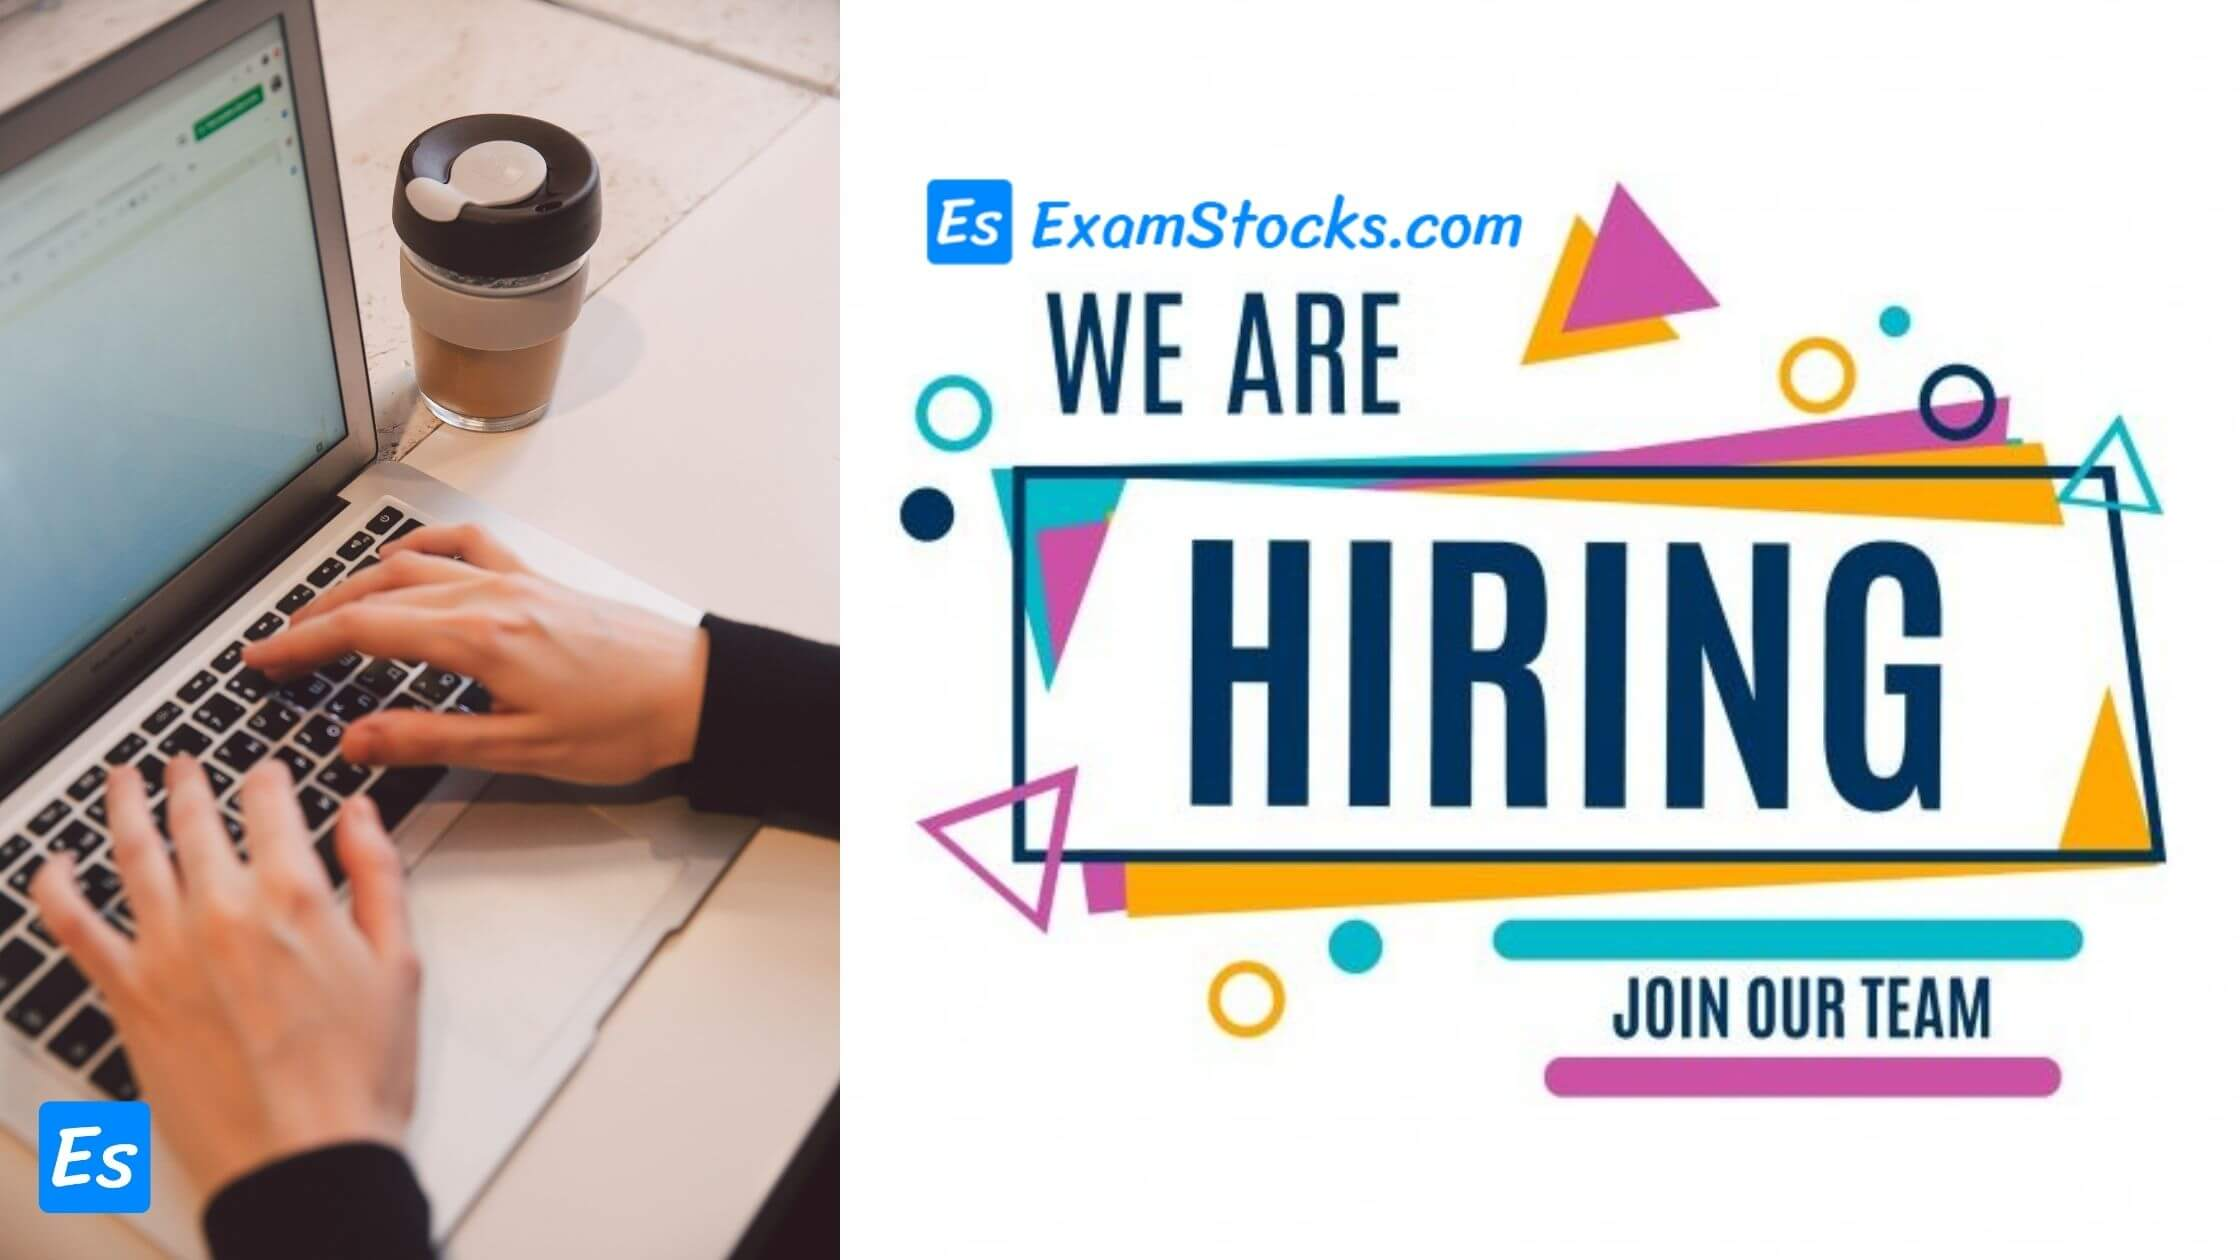 We Are Hiring Work For Examstocks